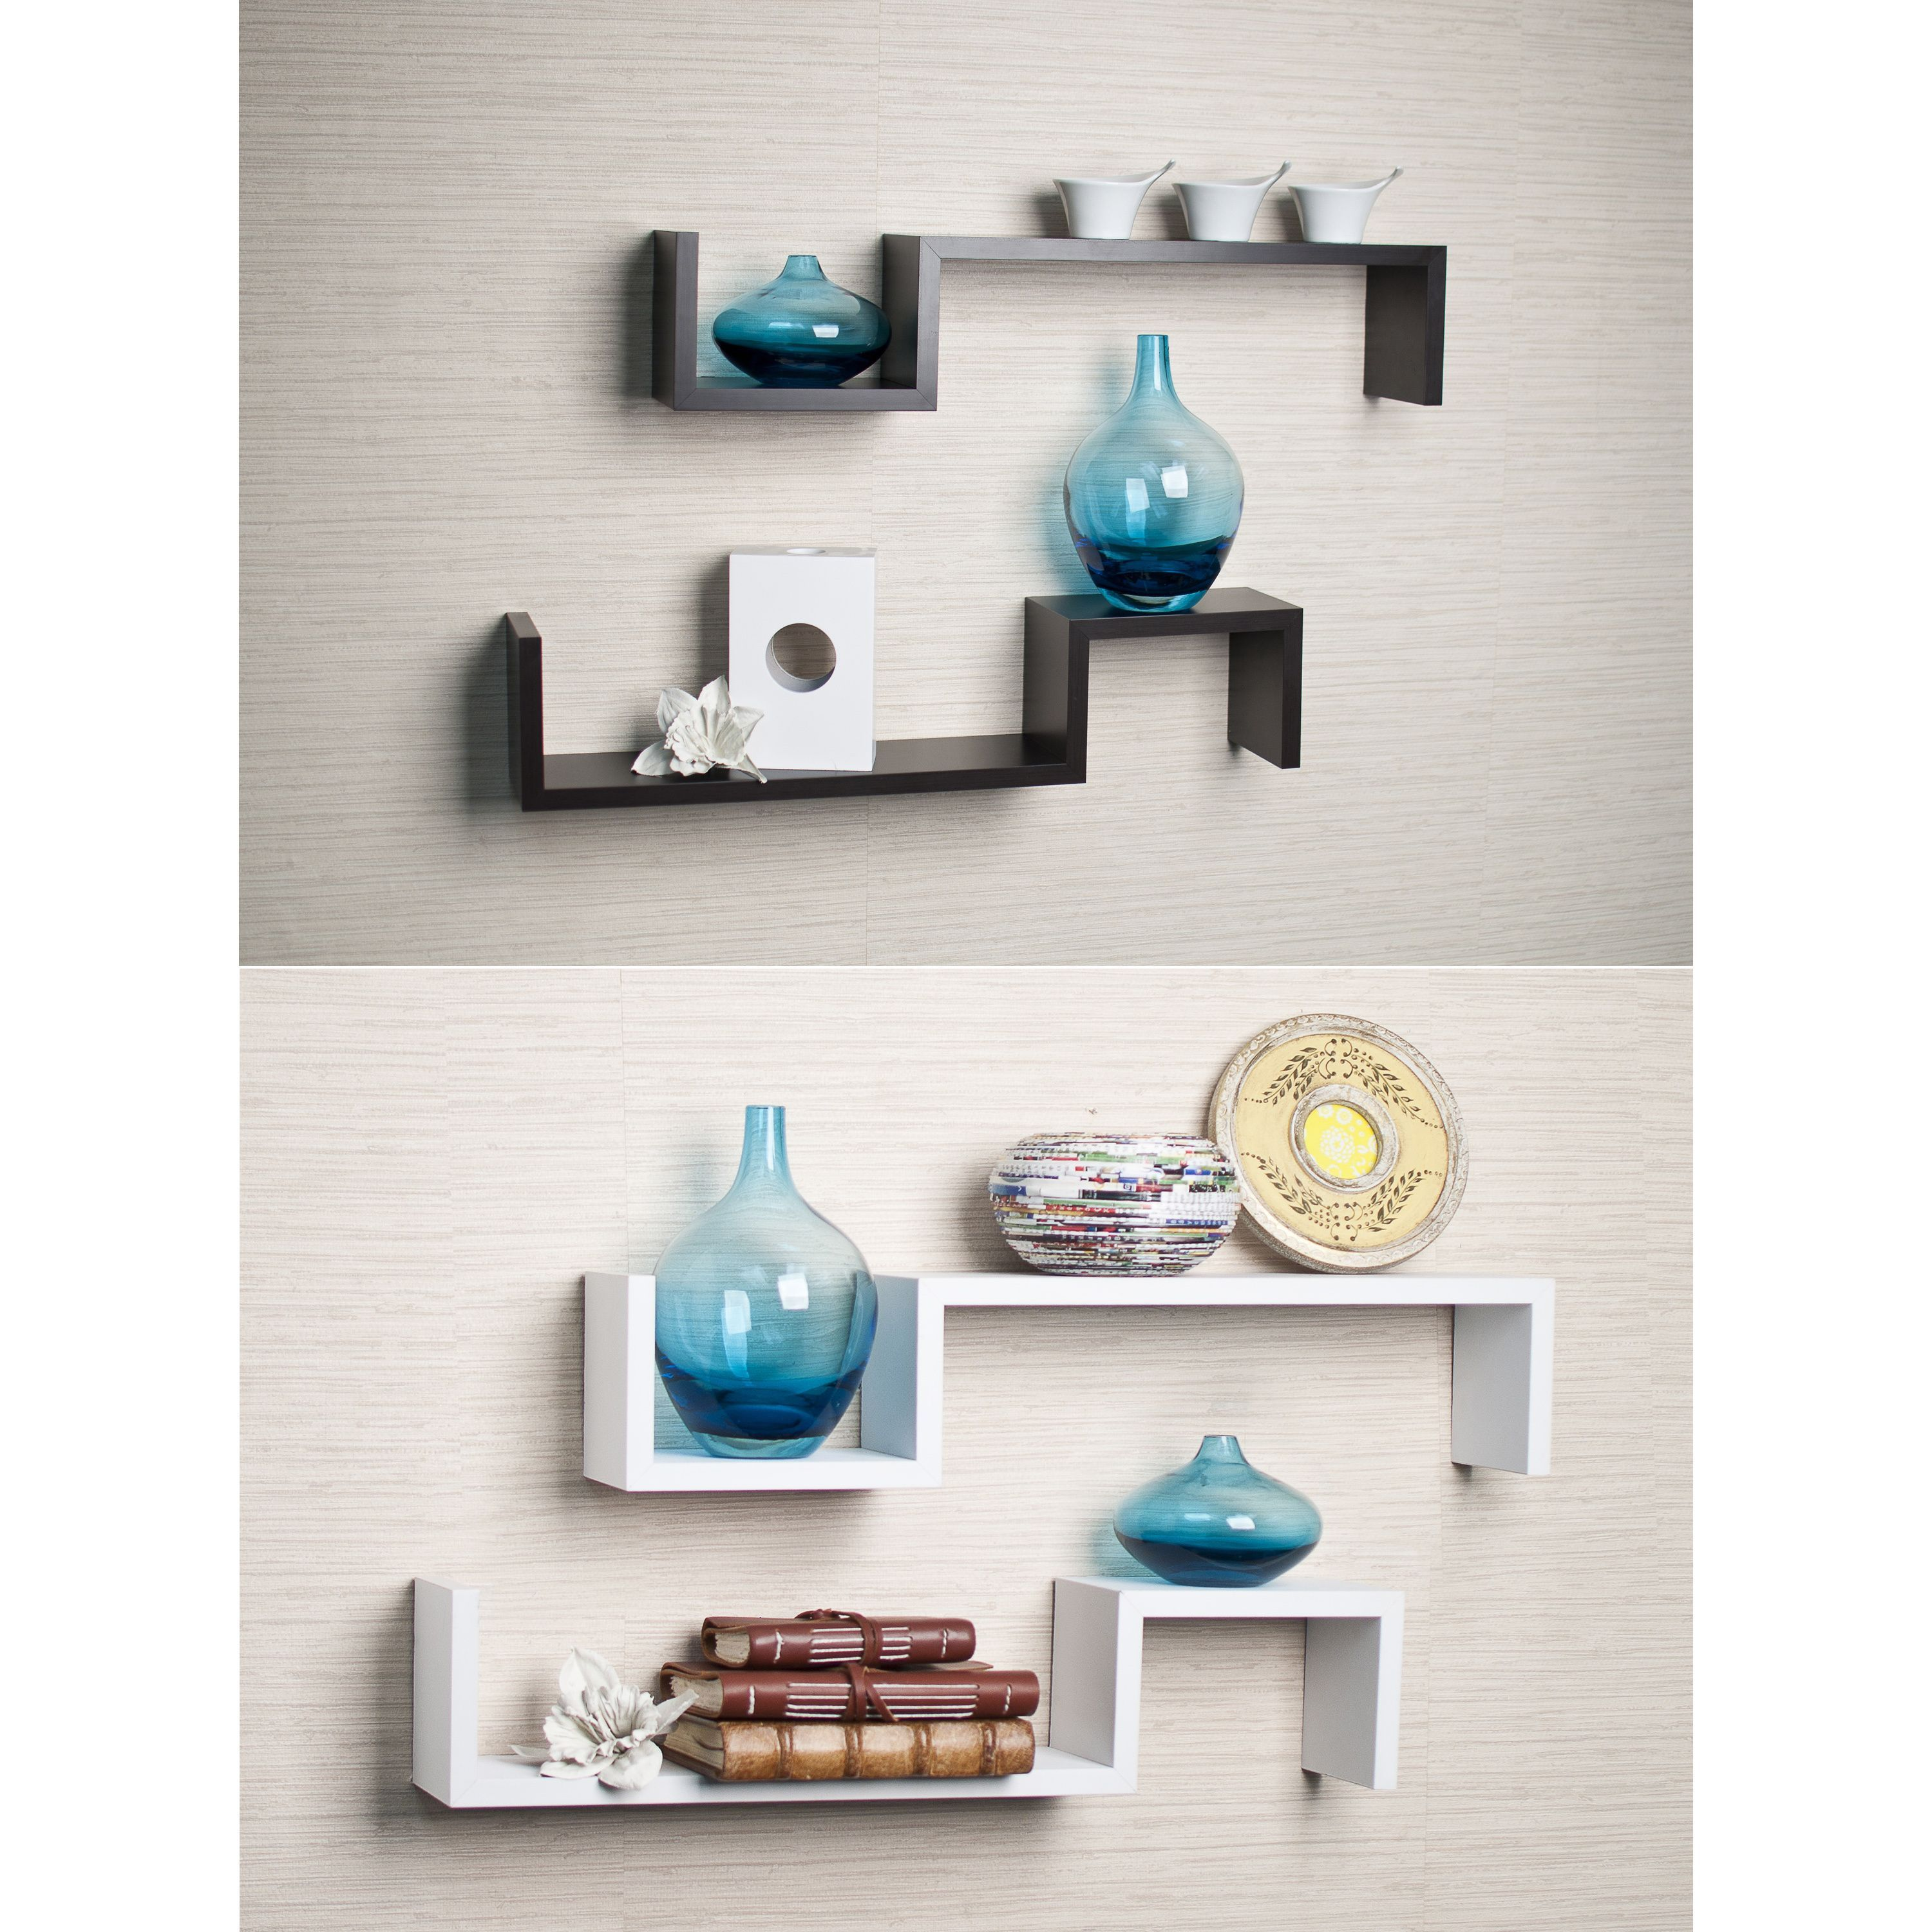 This S Wall Mount Shelves Gives The Illusion Of Floating In And Adds A Contemporary Feel To Your Room Decor Easy Install With No Visible